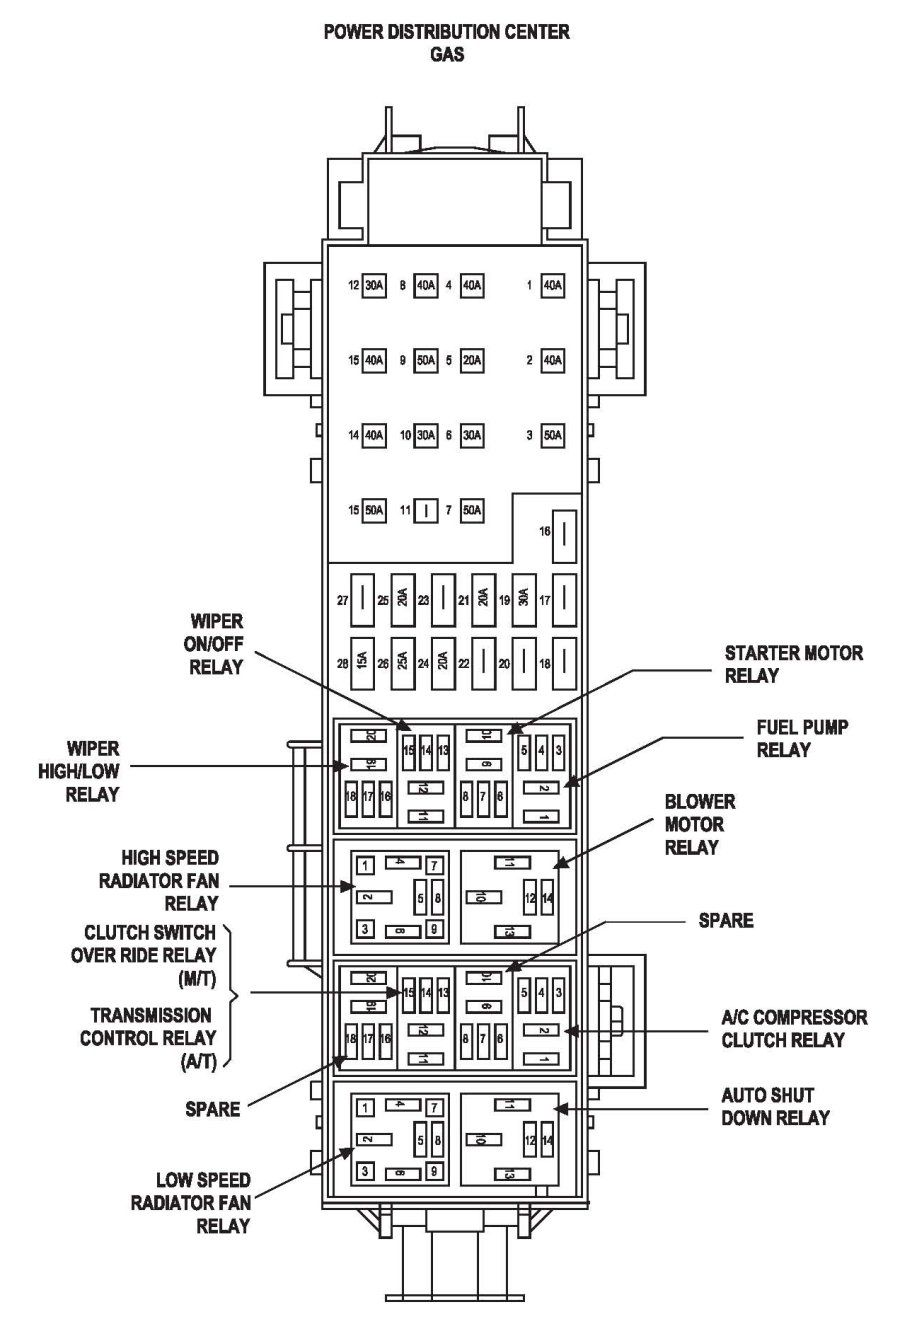 b3536c3739783eb19f827744cc42c3c4 jeep liberty fuse box diagram image details jeep liberty 2010 jeep wrangler fuse box layout at mifinder.co